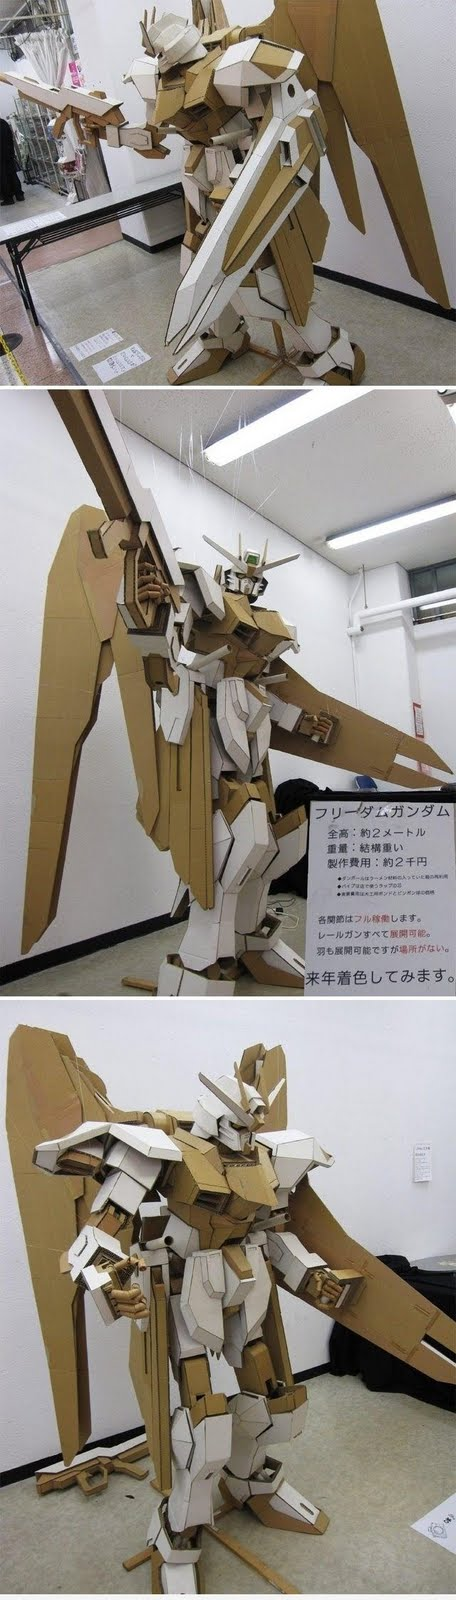 Gundam Cardboard Art funny pic